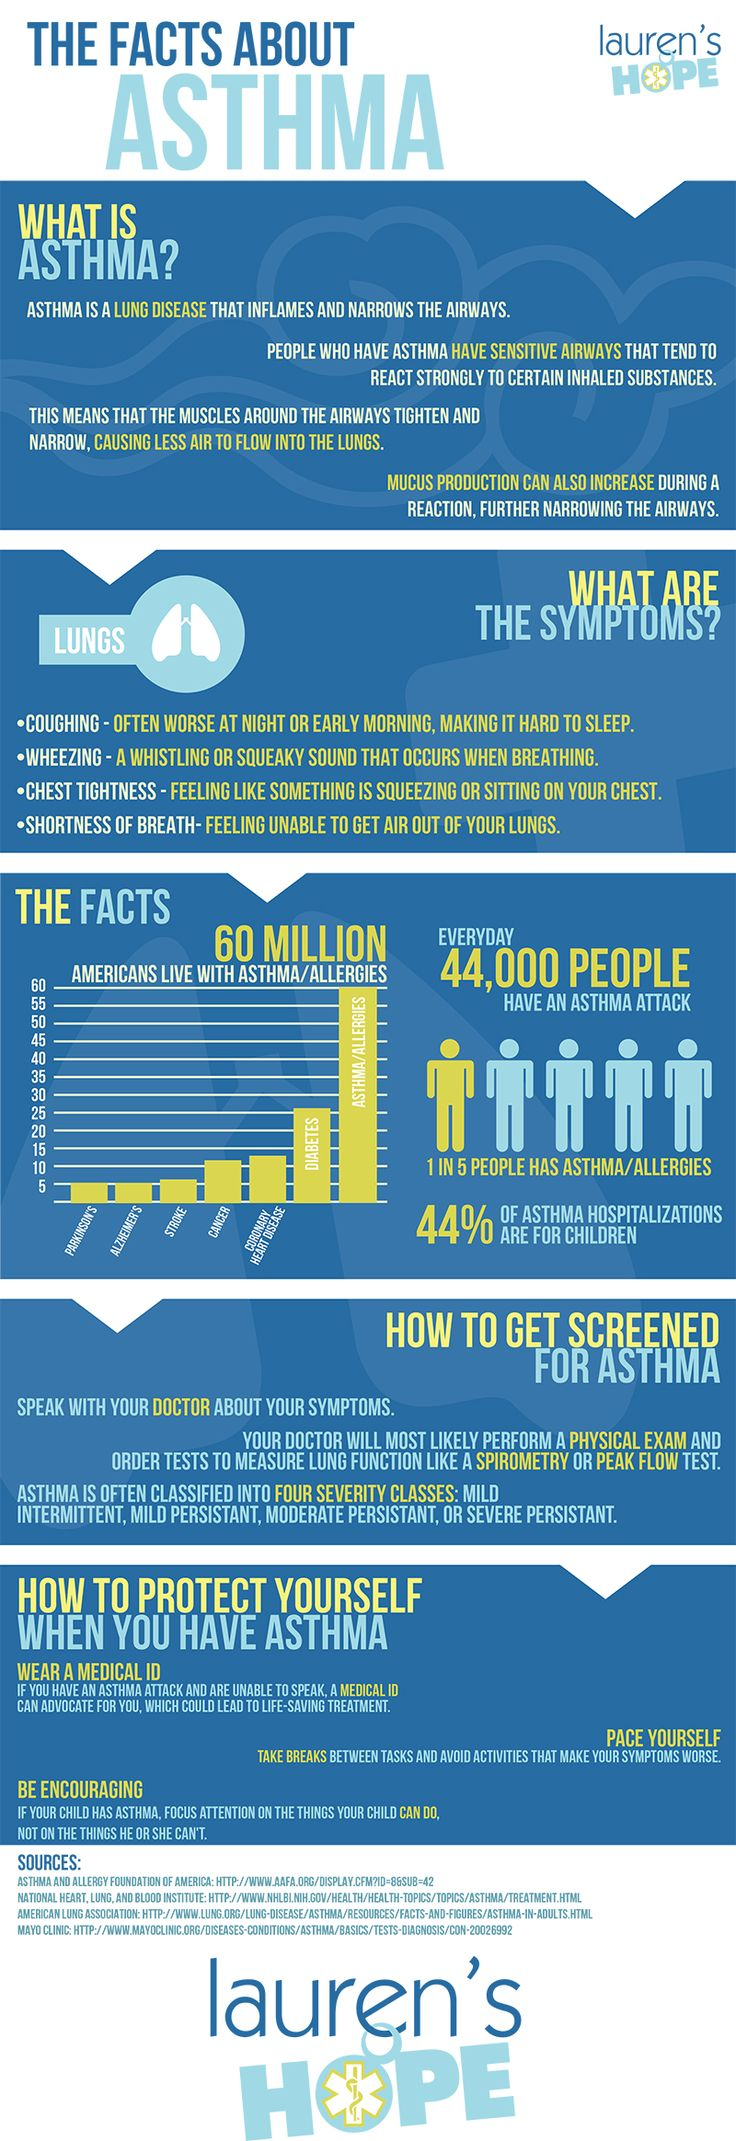 Every day, 44,000 people have an Asthma attack. #allergy #awareness #asthma #infographic #allergies:  Website, 44 000 People, Allergies Awareness, Health Topic, Awareness Asthma, Asthma Attack, Asthma Projects, Asthma Infographic, General Health